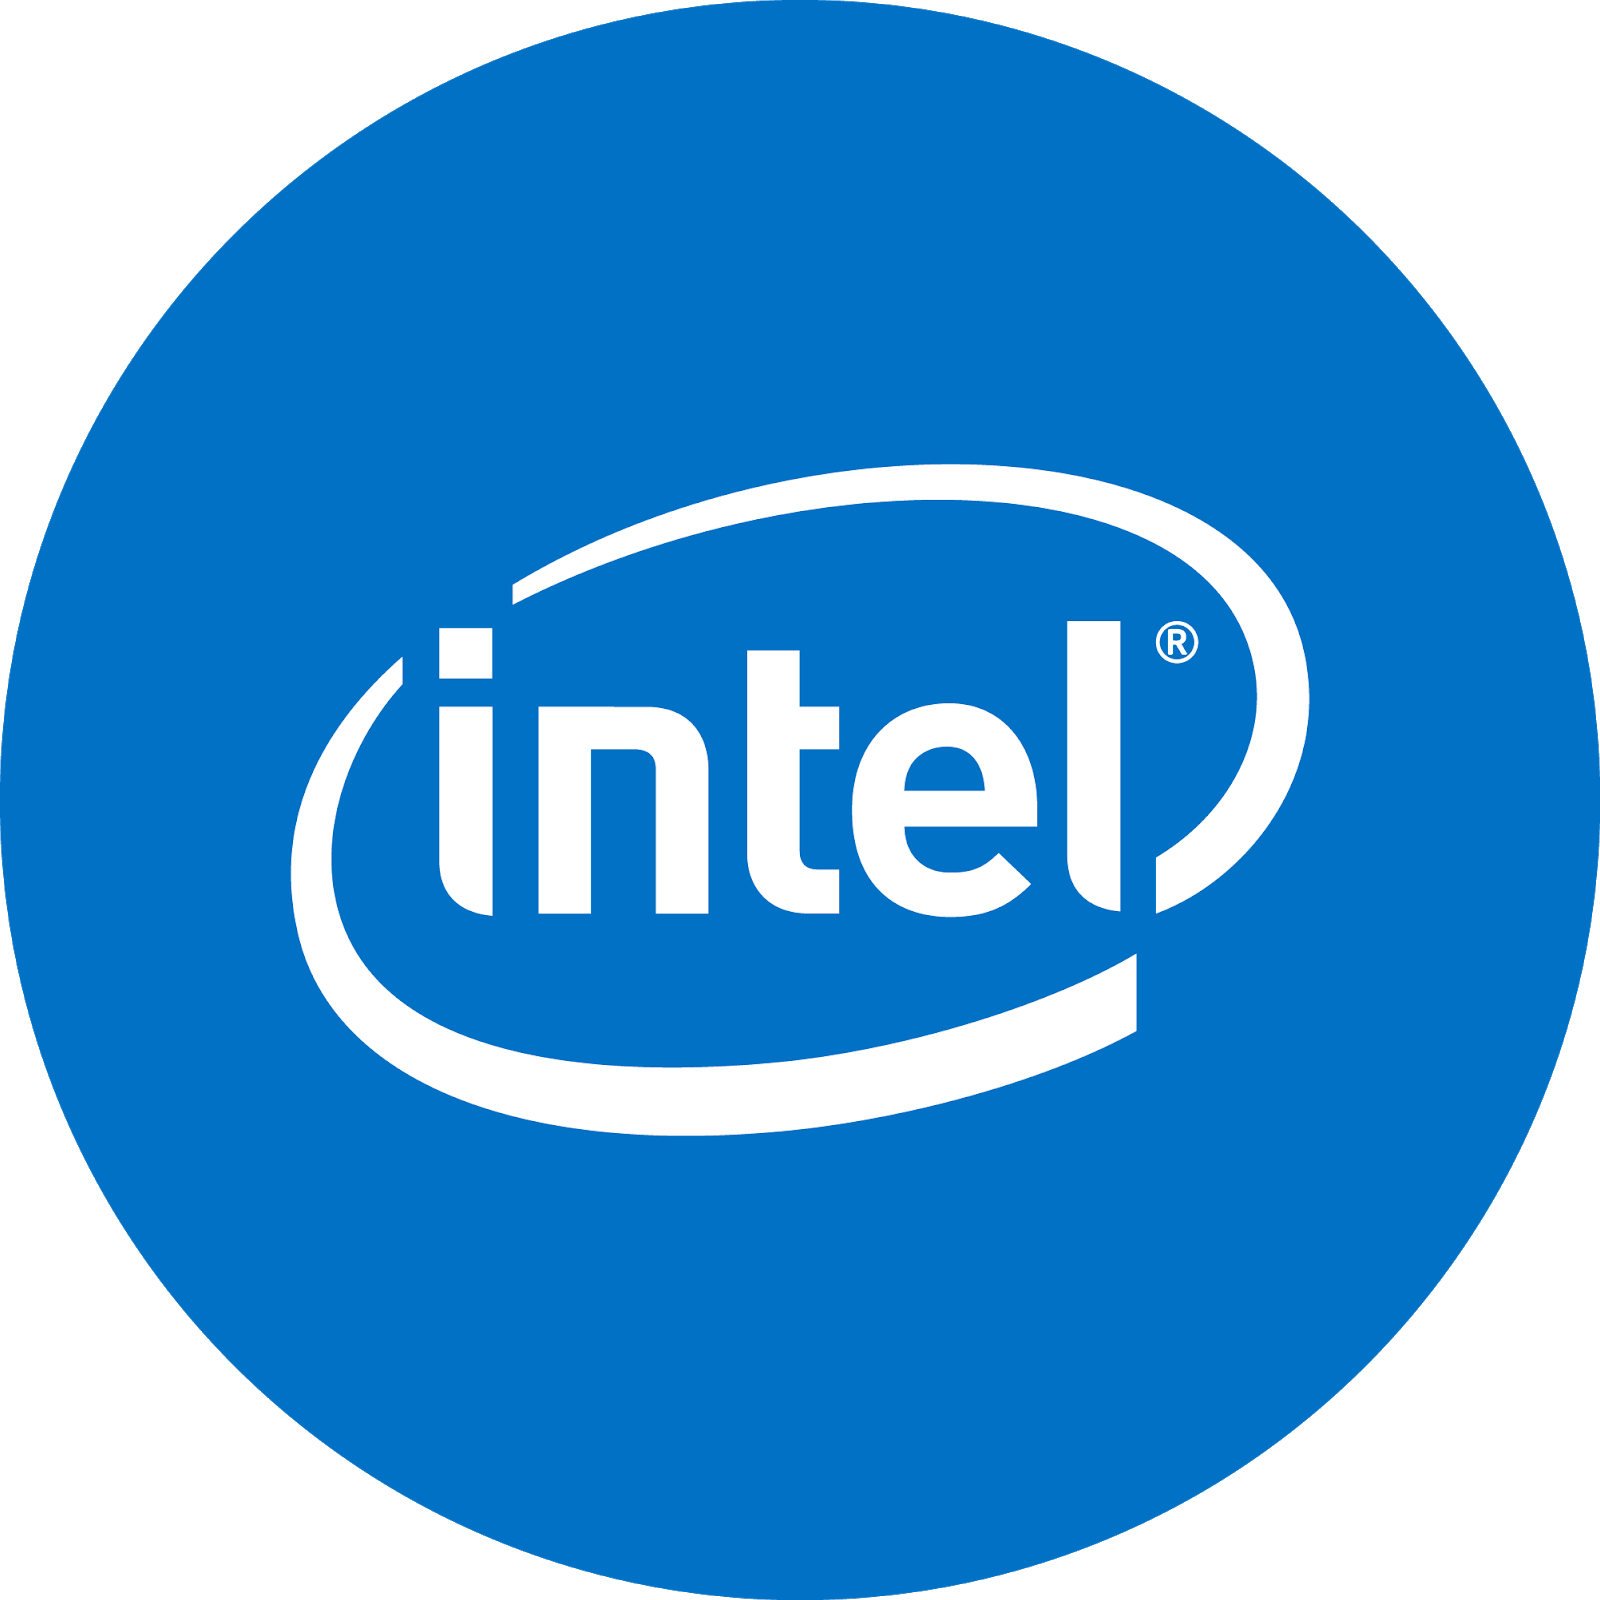 download intel logo vector svg eps png psd ai color free